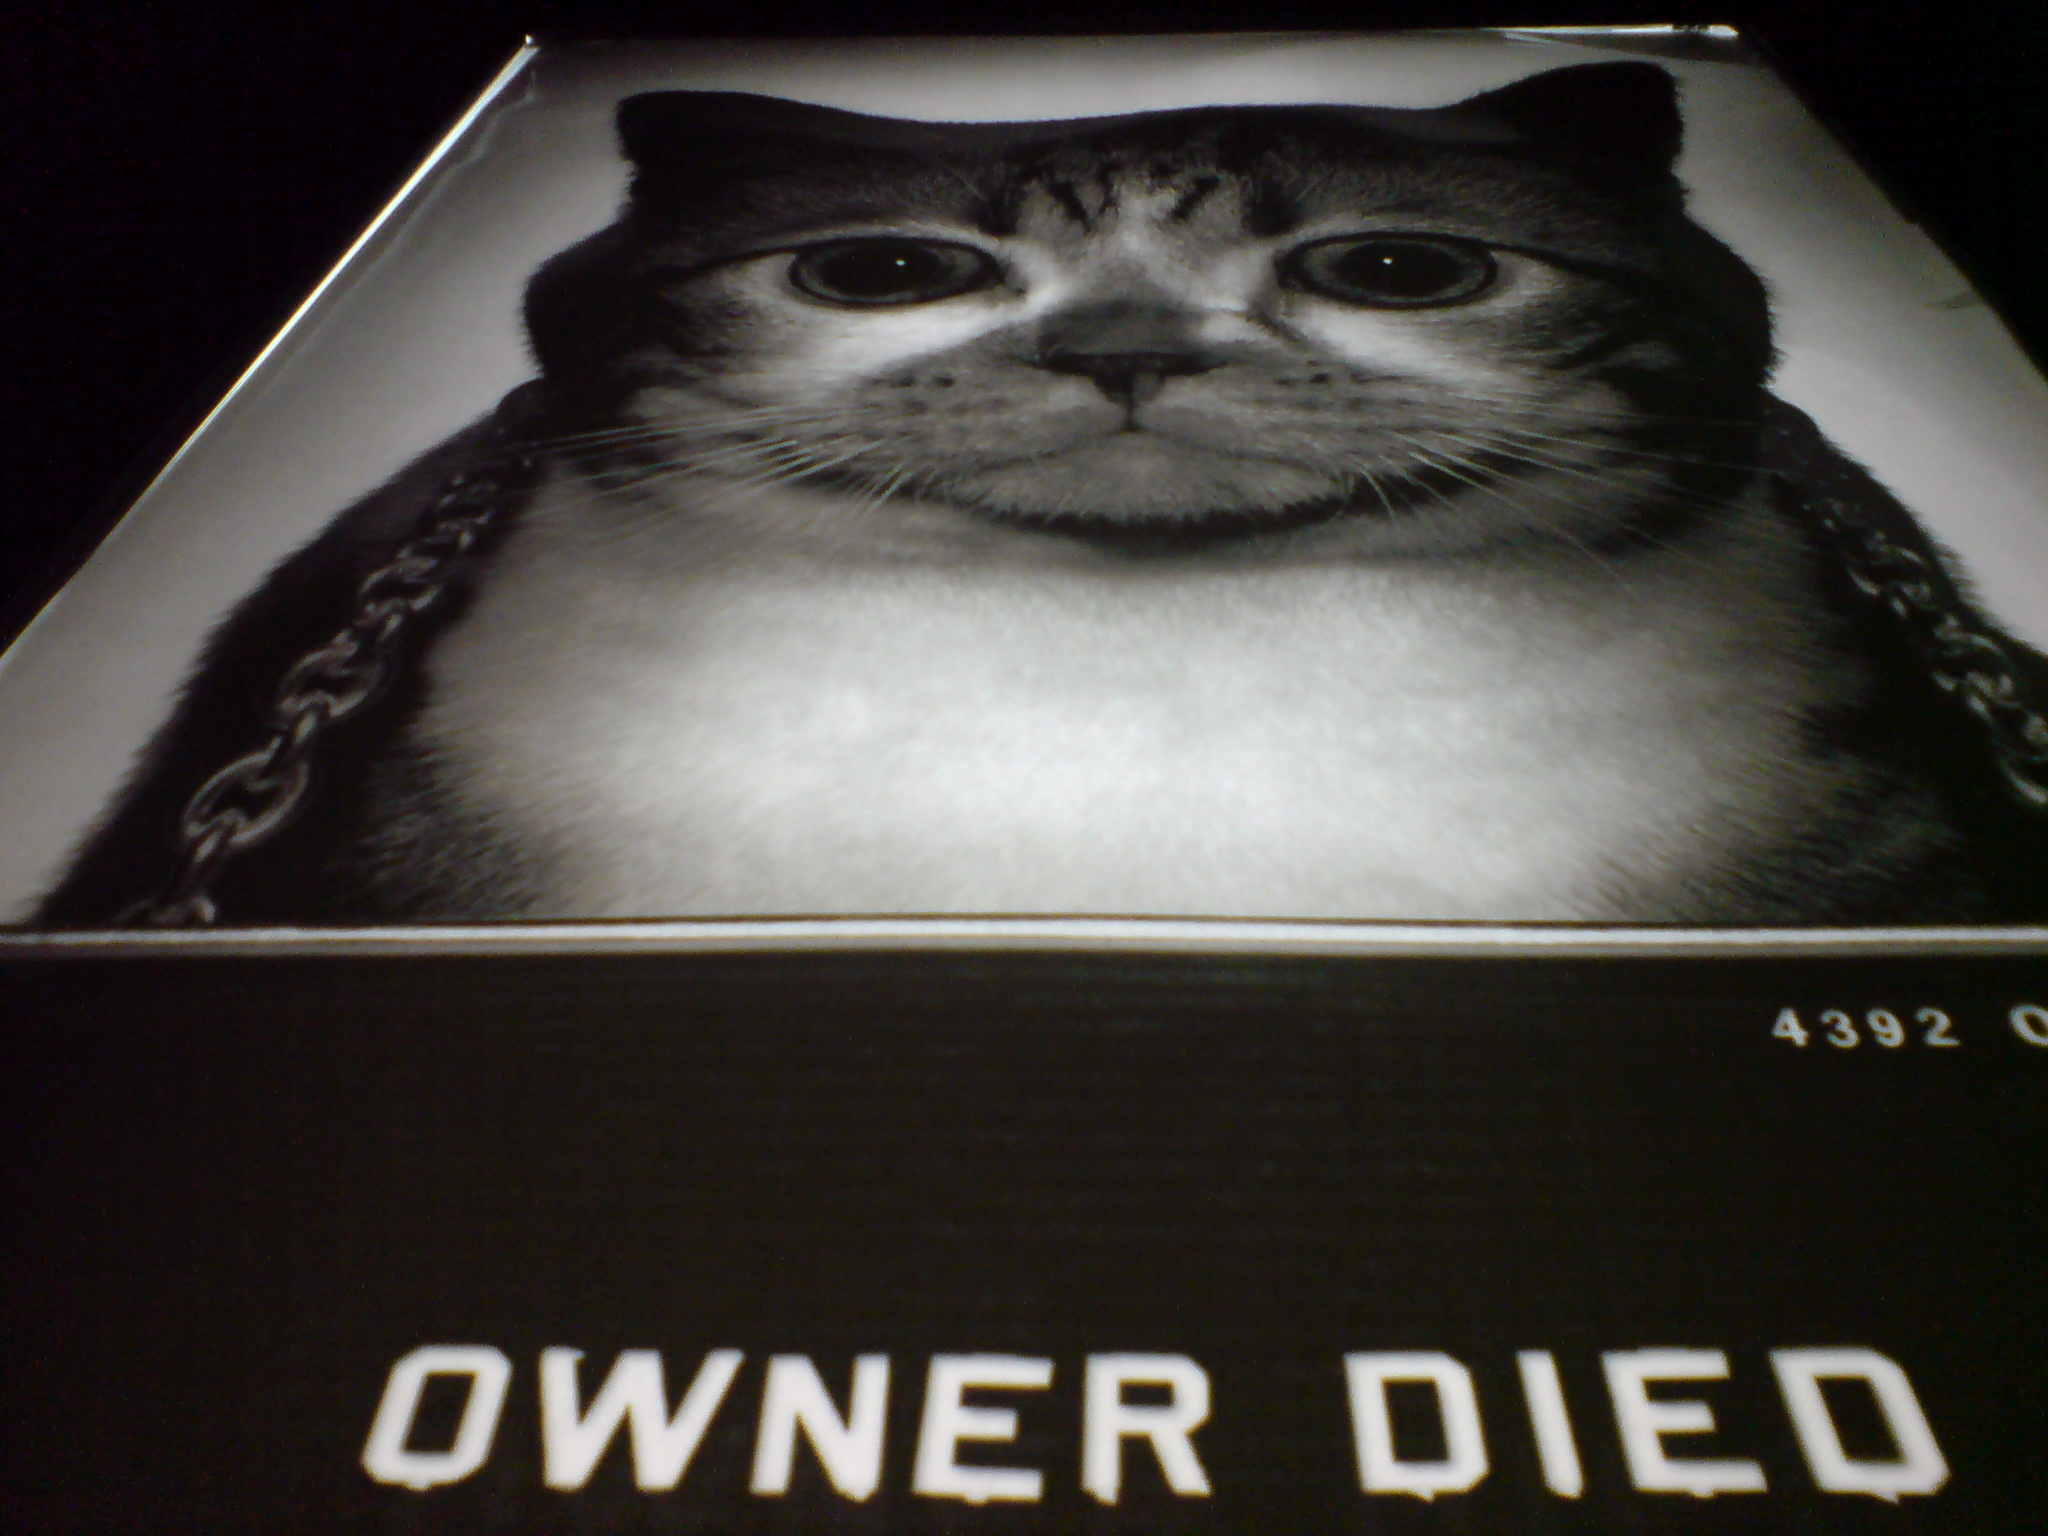 Fat cat owner died